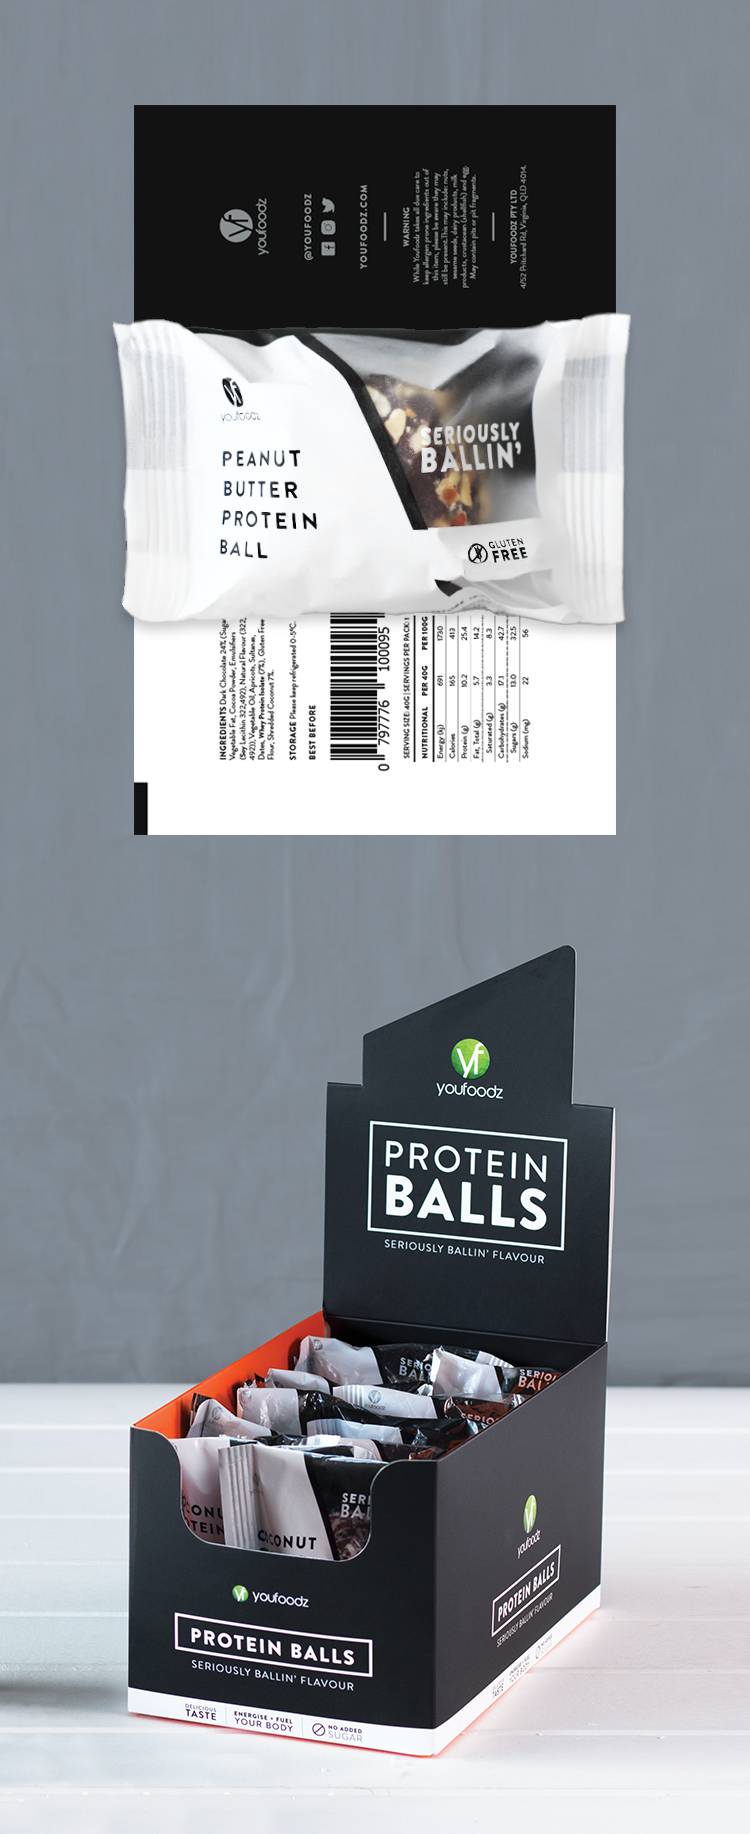 6-New-ProtienBalls-OldPacket-M